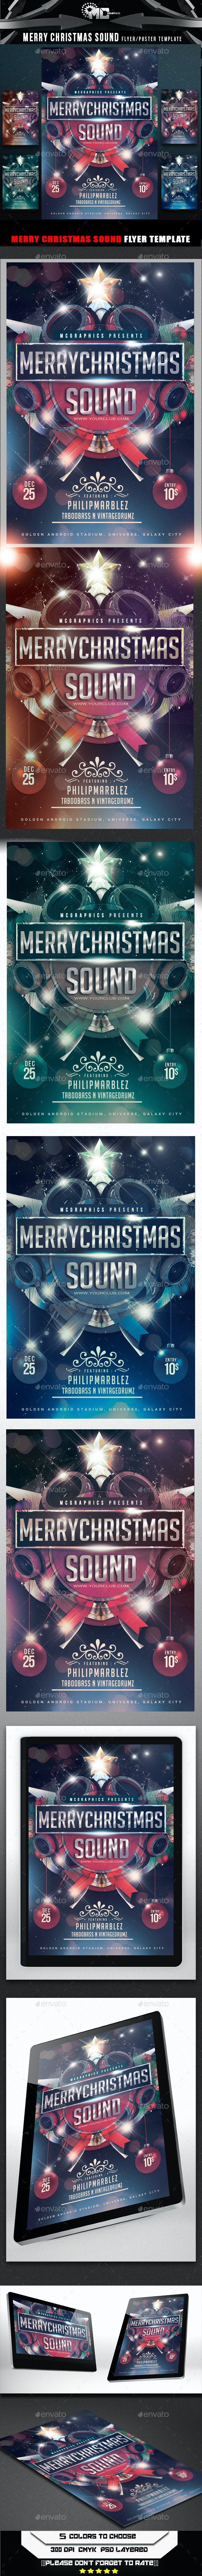 Merry Christmas Sound Flyer Template - Events Flyers